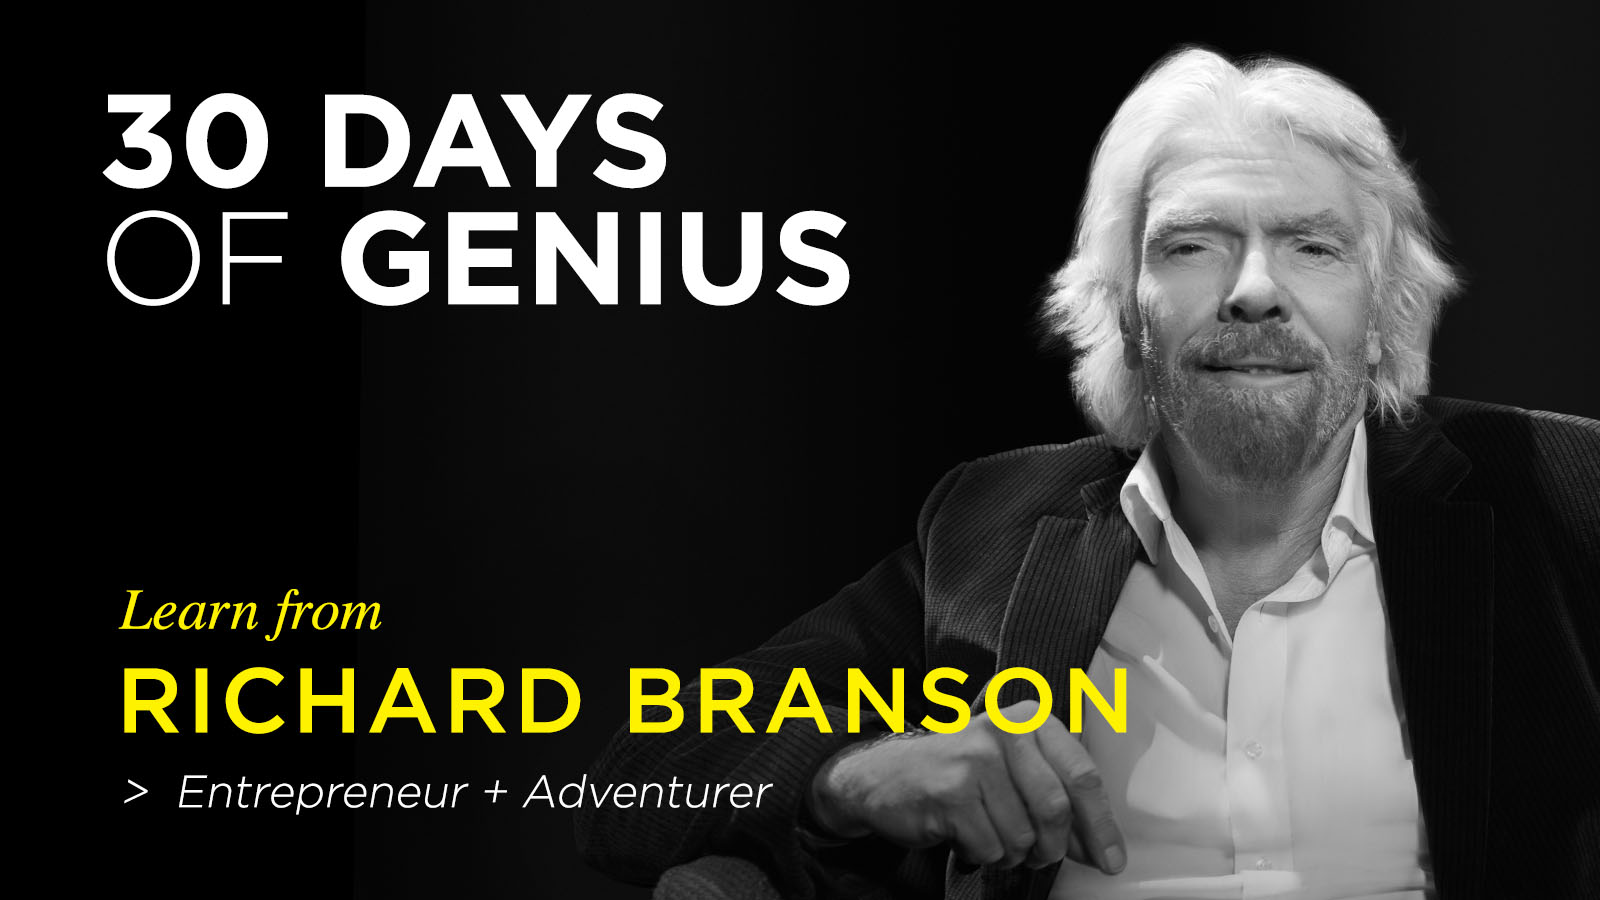 Richard Branson 30 Days of Genius Interview